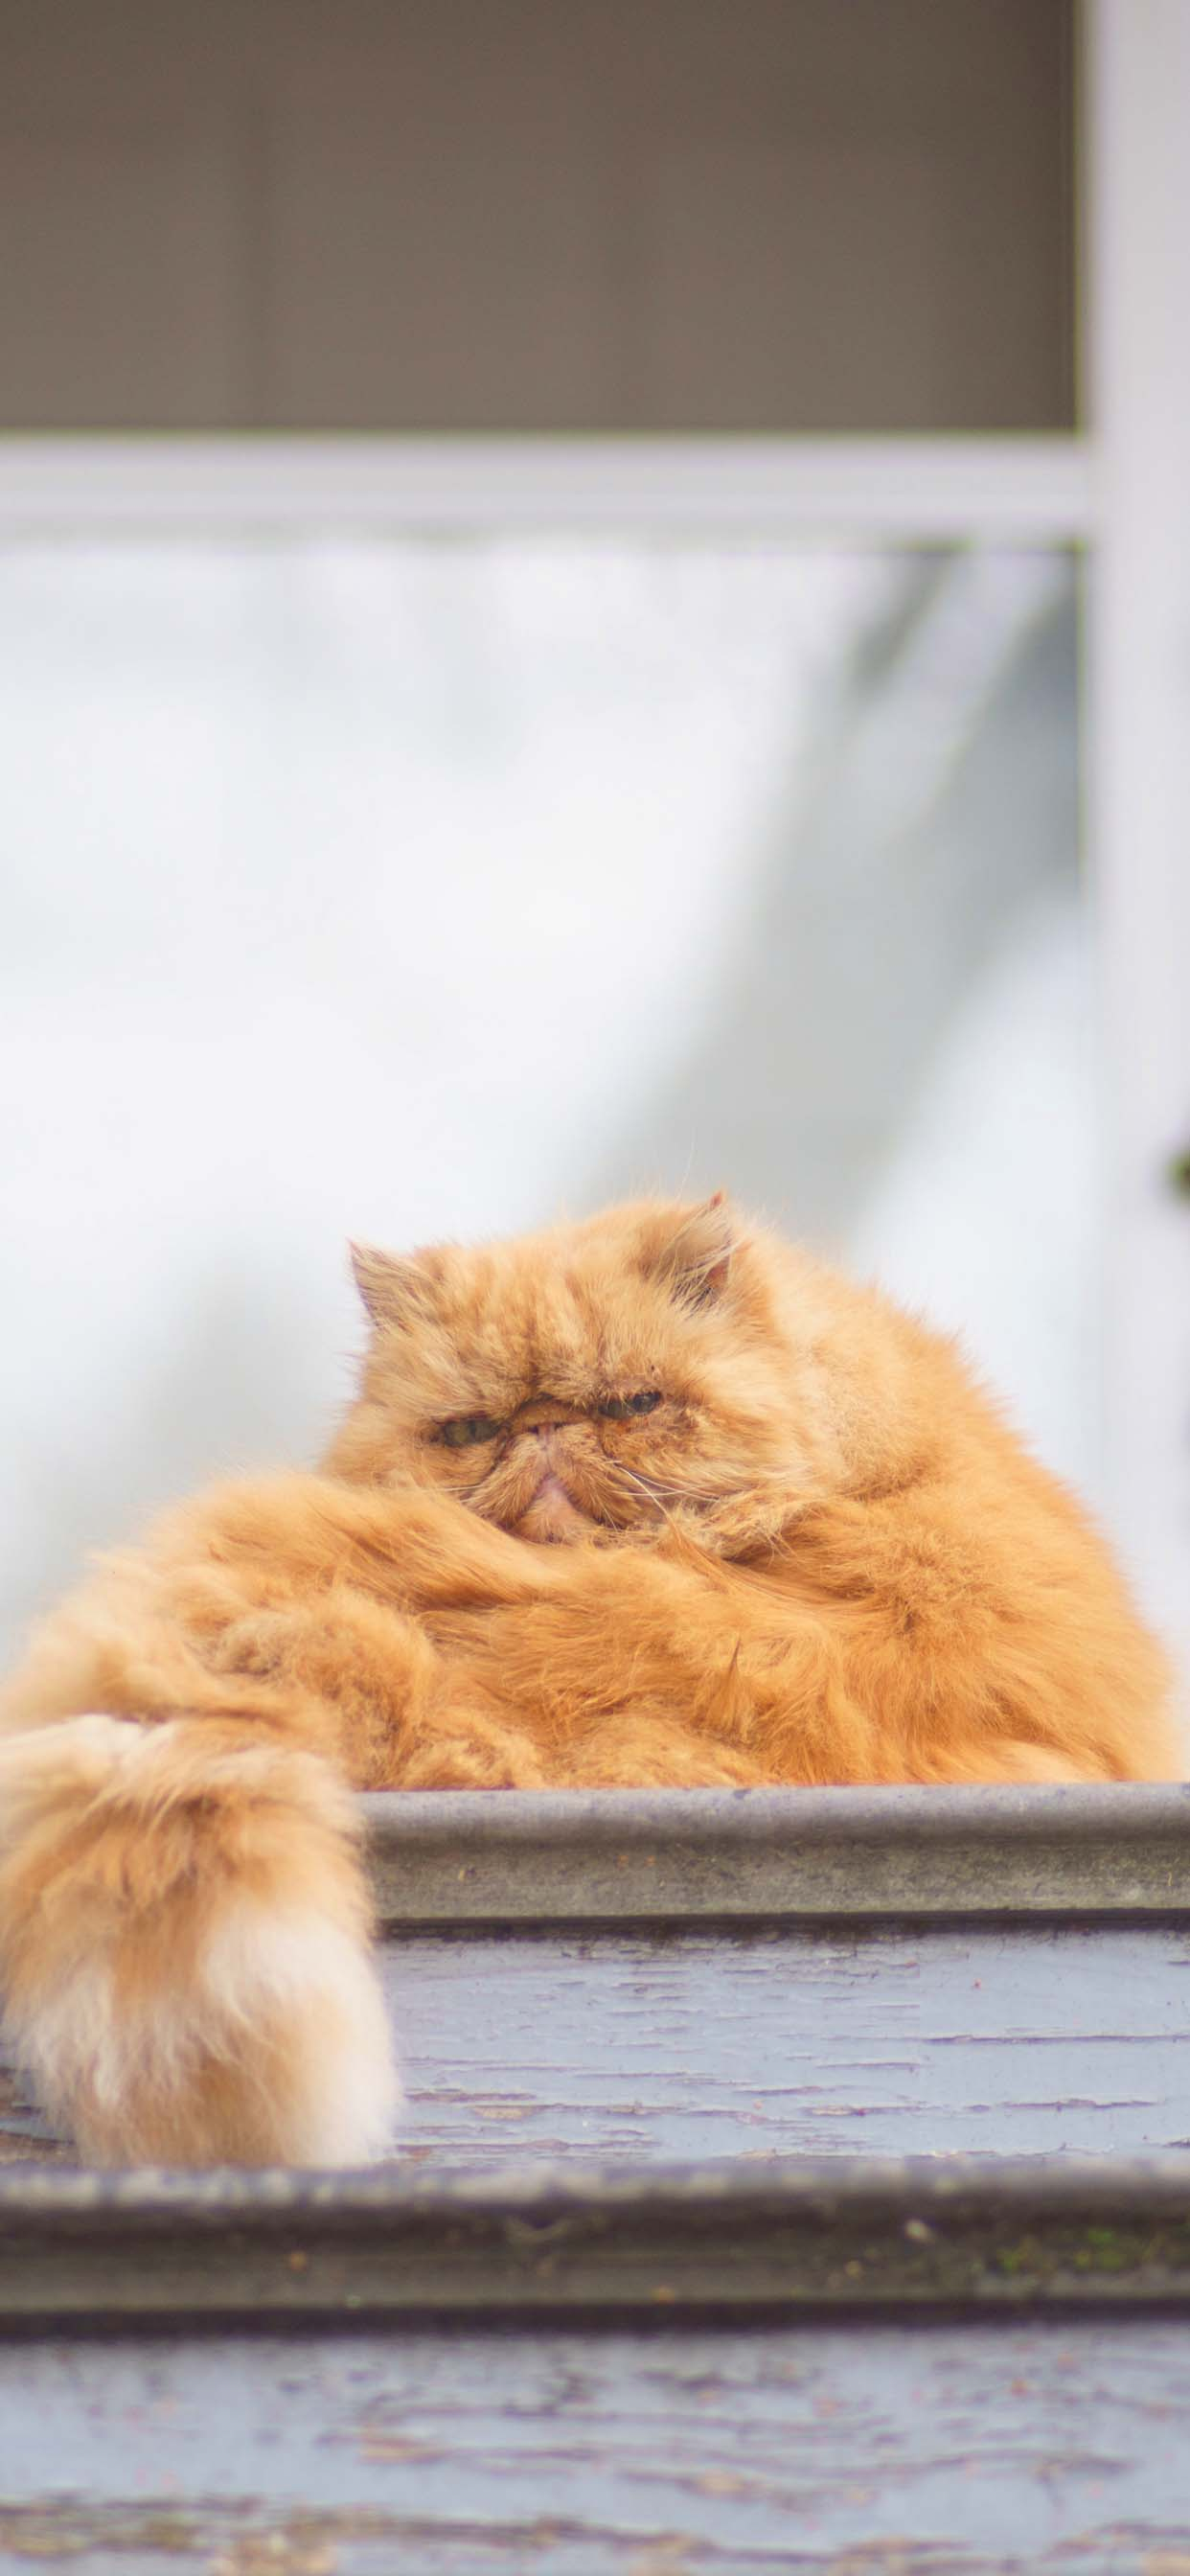 Cute Cat Wallpaper For iPhone XR - Cute Orange Persian Cat